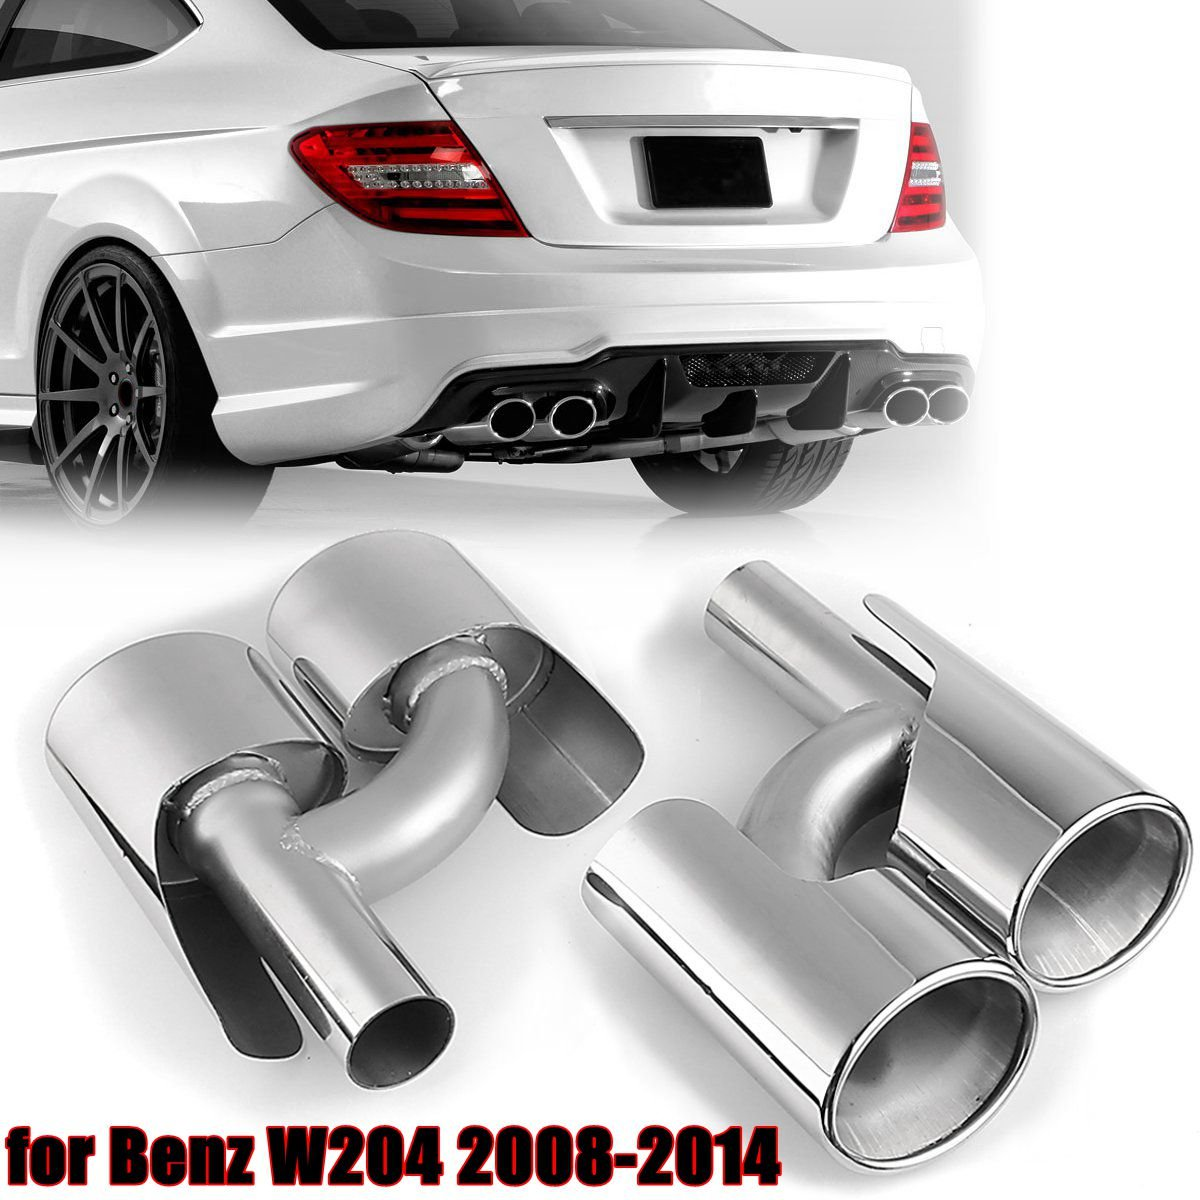 Stainless Steel Car muffler Exhaust pipe Tip 63mm Double End Pipe Tail throat For E63 Merc W204 W212 c63 4 outlet for AMG 06-14 2 5 inch 4 inch 63mm exhaust pipe vertical drum car exhaust pipe exhaust tail pipe refires drum sound stainless steel pipes